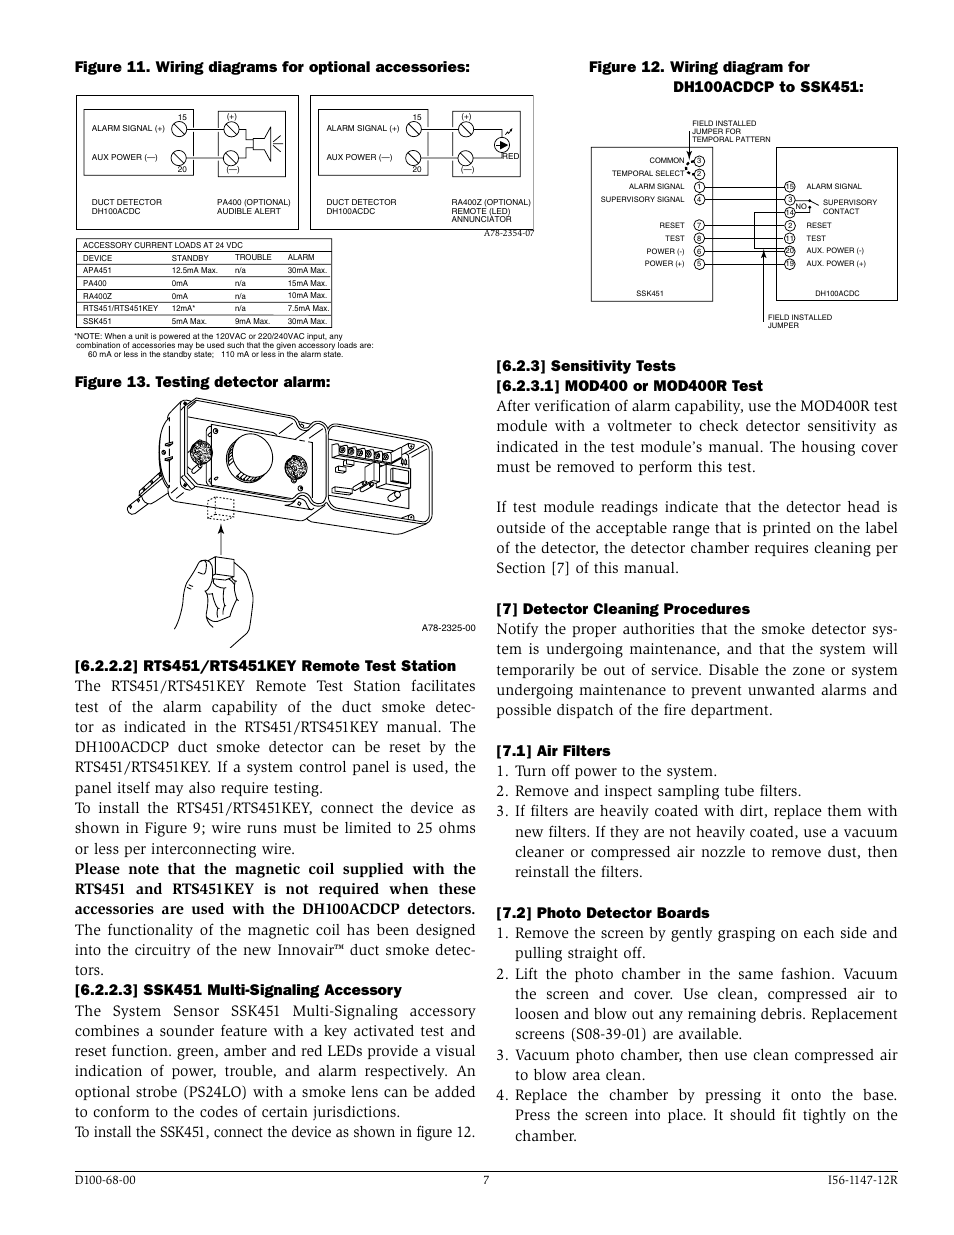 figure testing detector alarm system sensor innovair figure 13 testing detector alarm system sensor innovair dh100acdcp user manual page 7 8